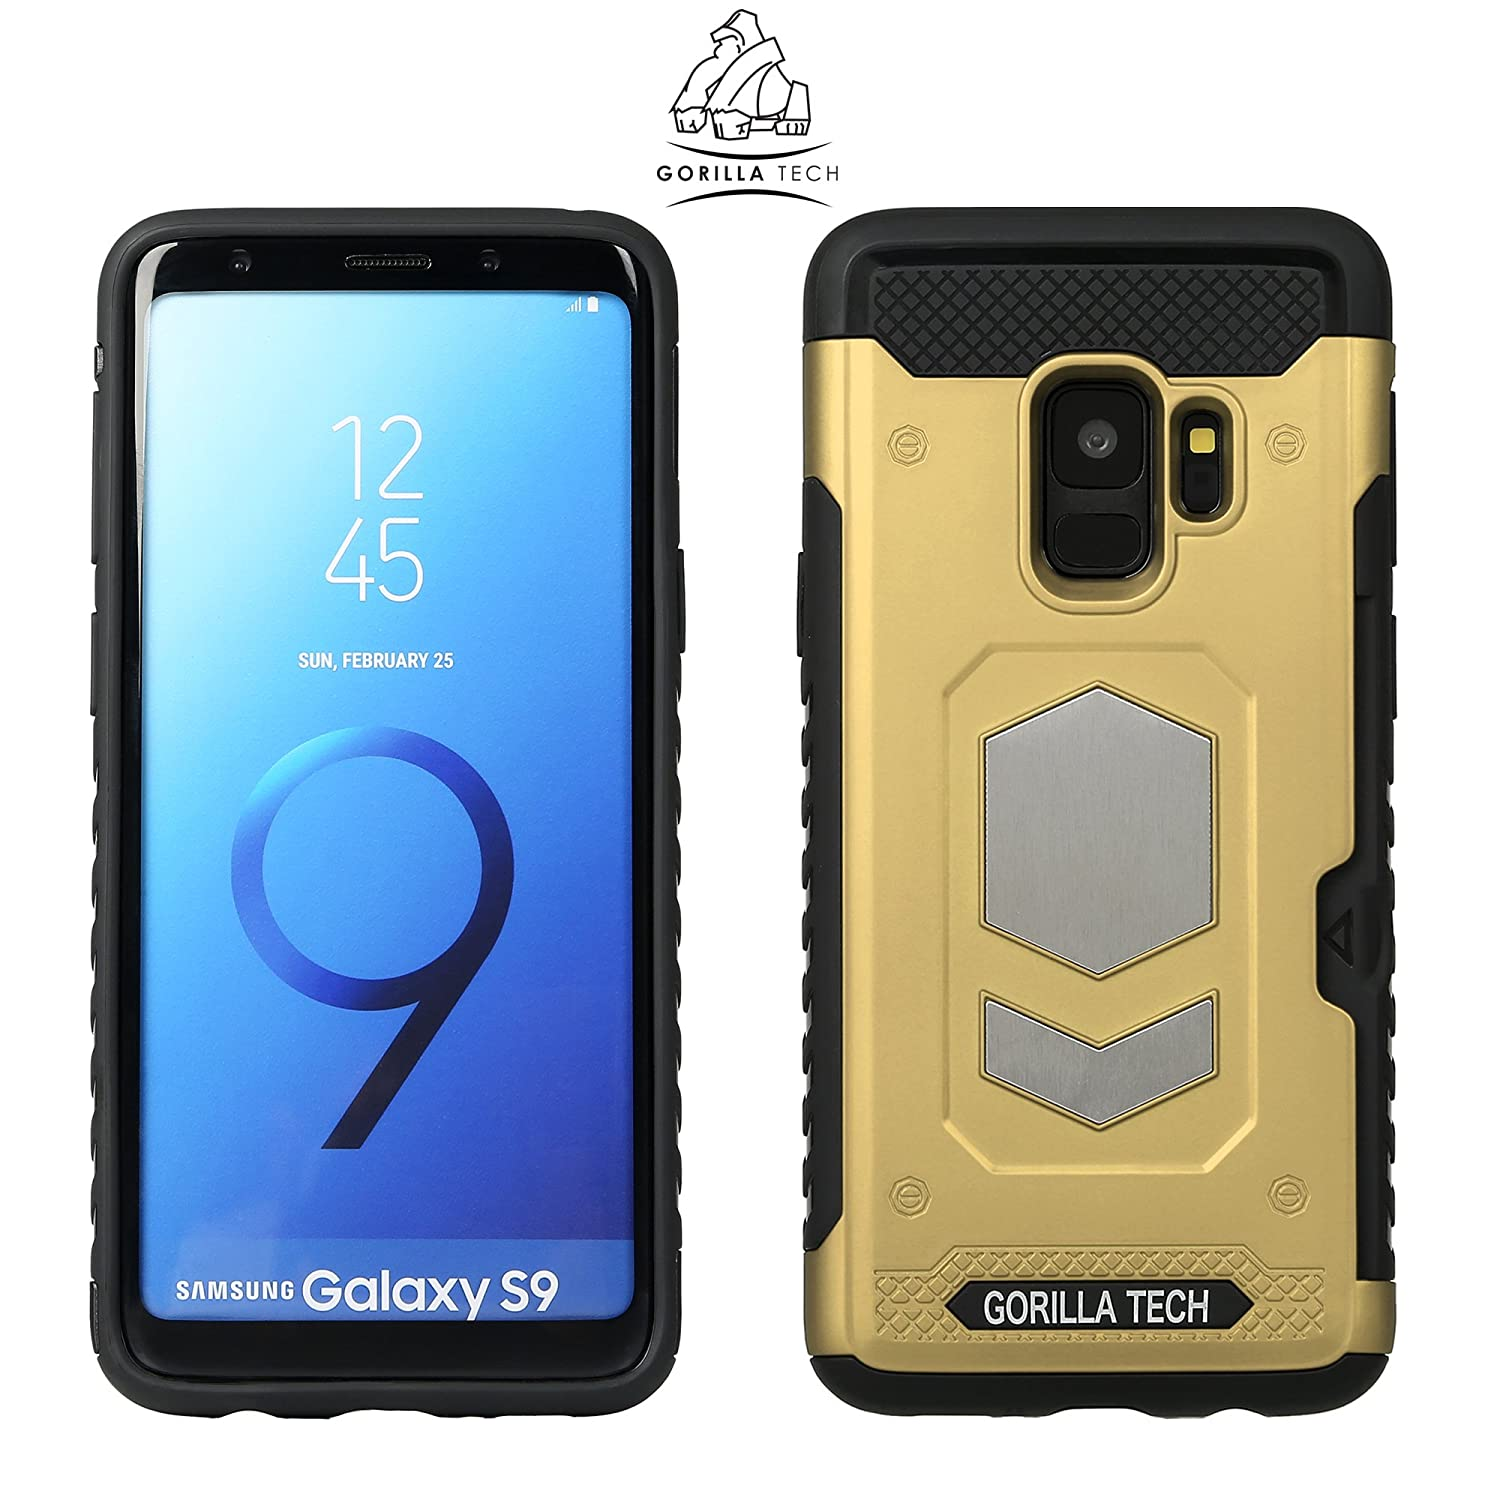 low priced 9b785 2cd2e Gorilla Tech Apple iPhone 6S Slim Armour Case Dual Layer Protection Best  Shockproof Cover